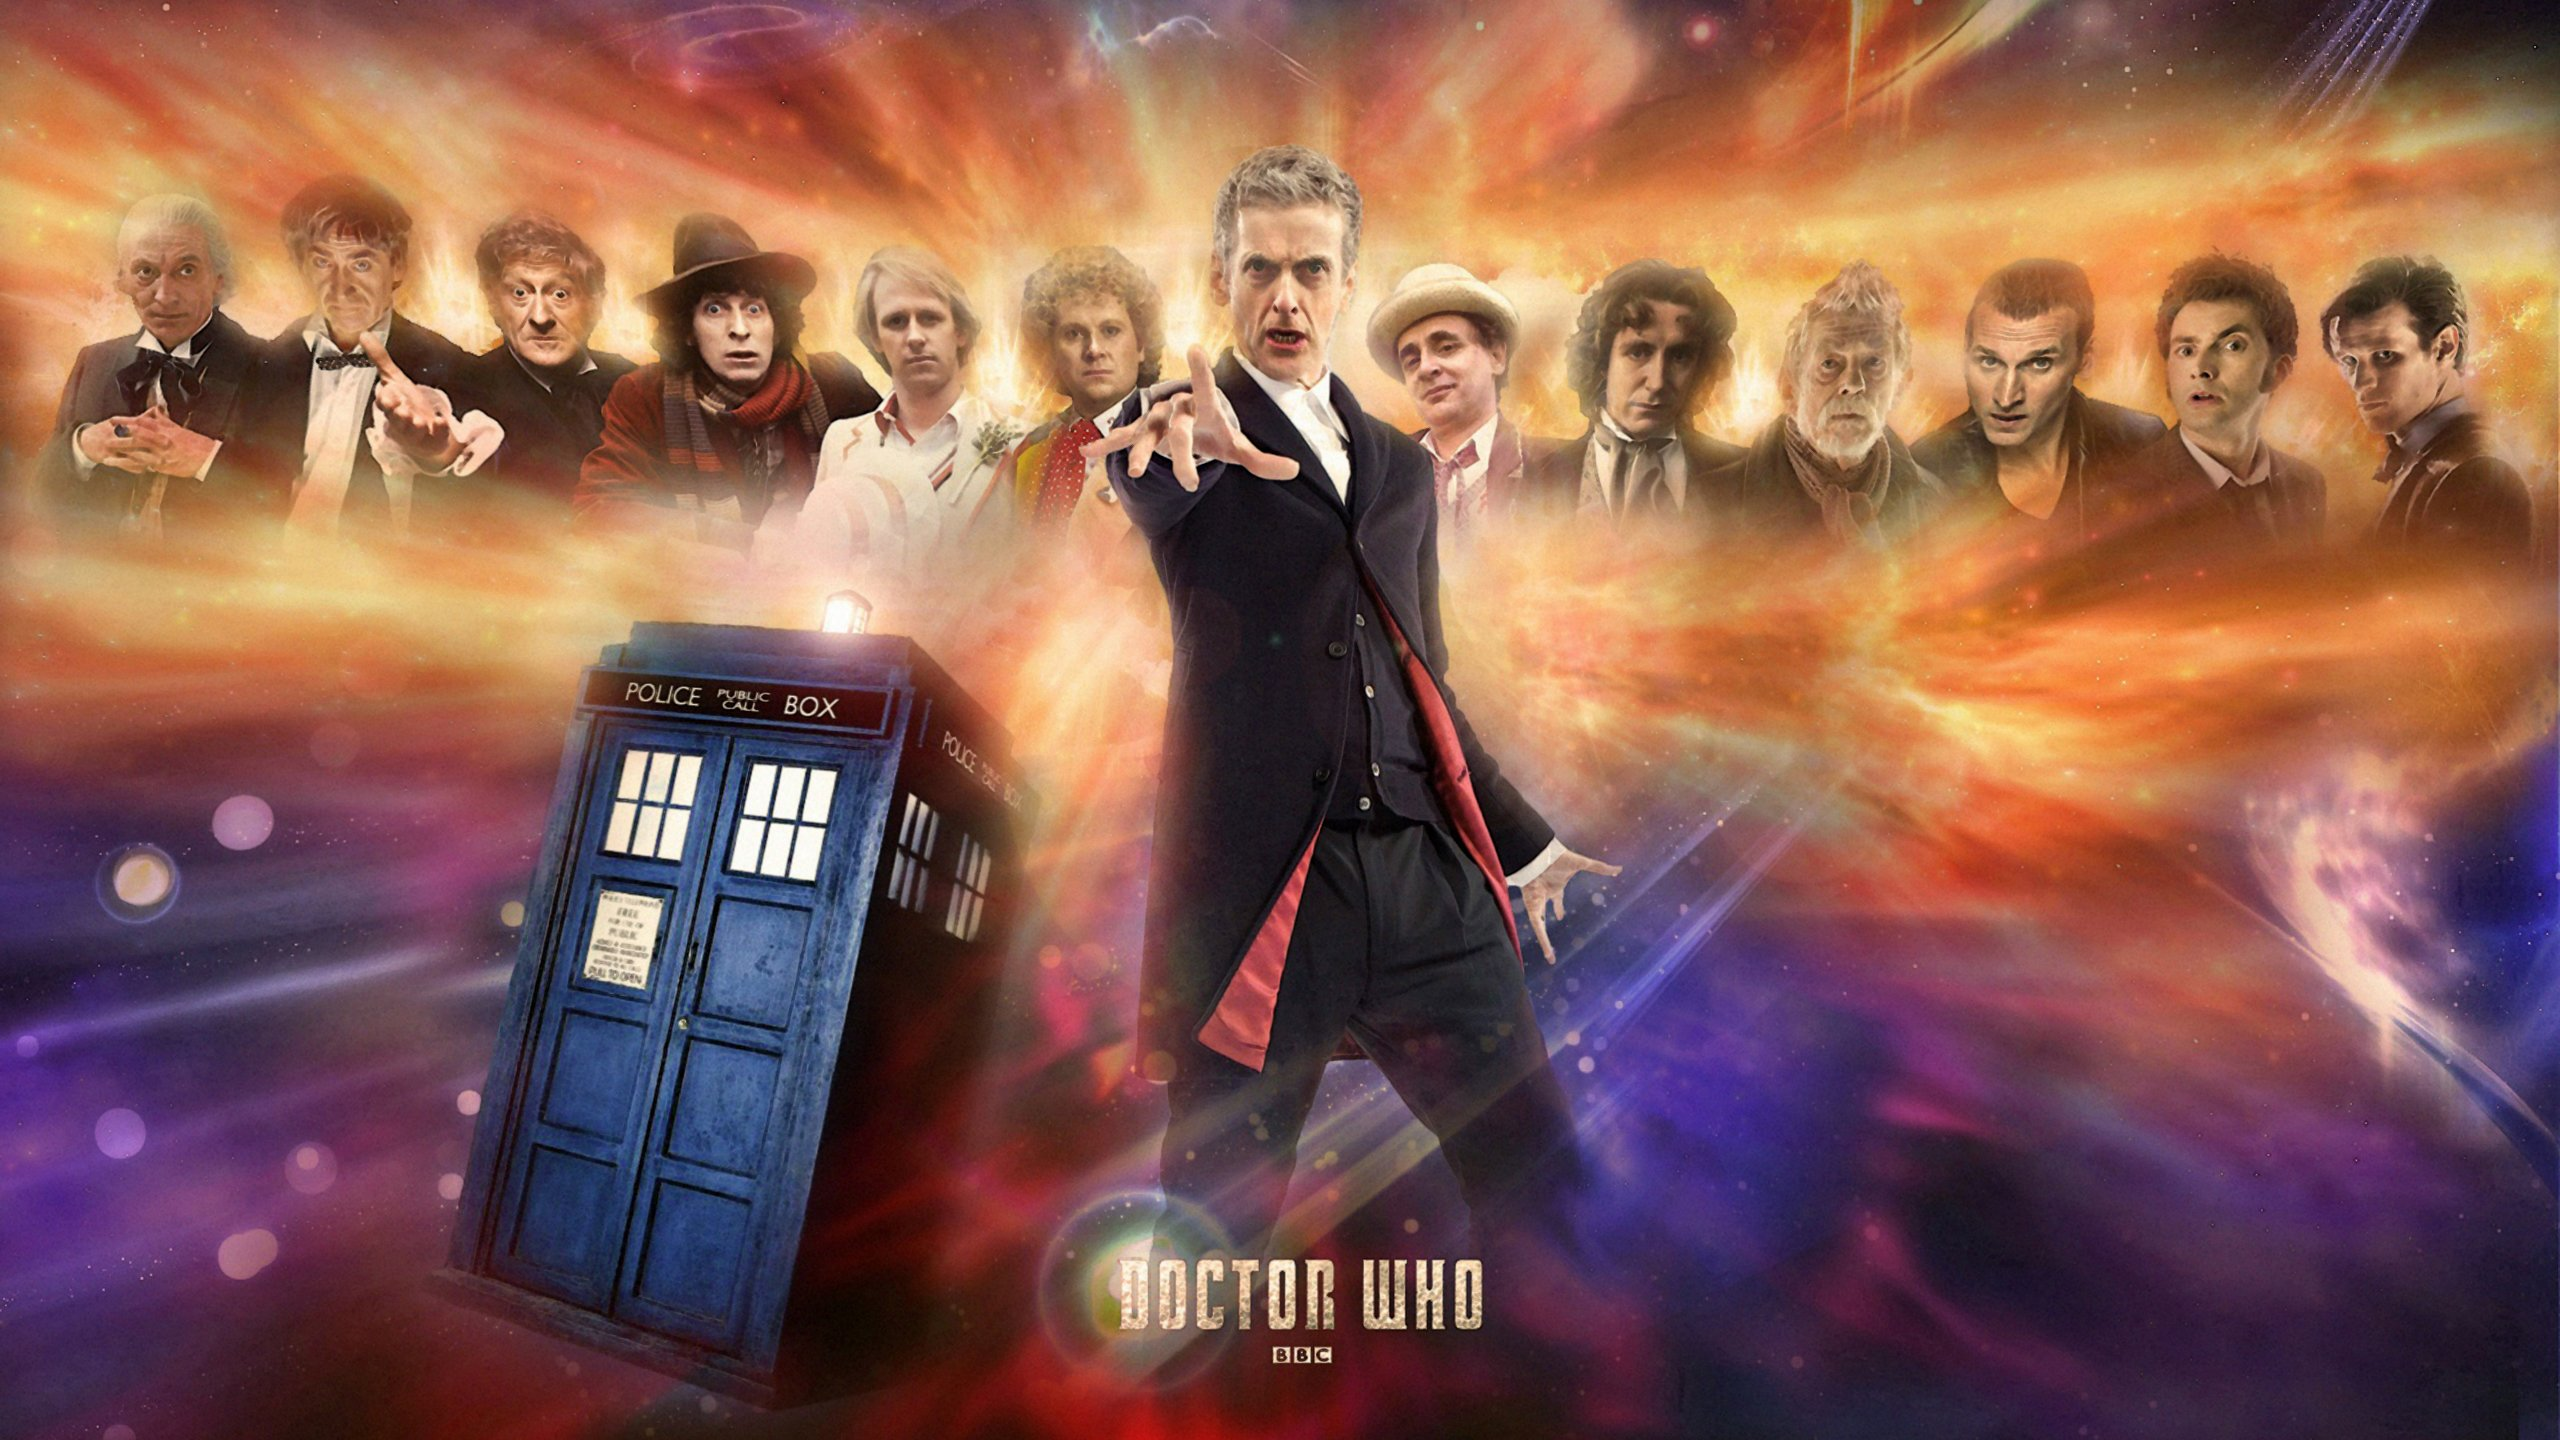 Full Screen Fall Wallpaper Hd Doctor Who Backgrounds Pixelstalk Net